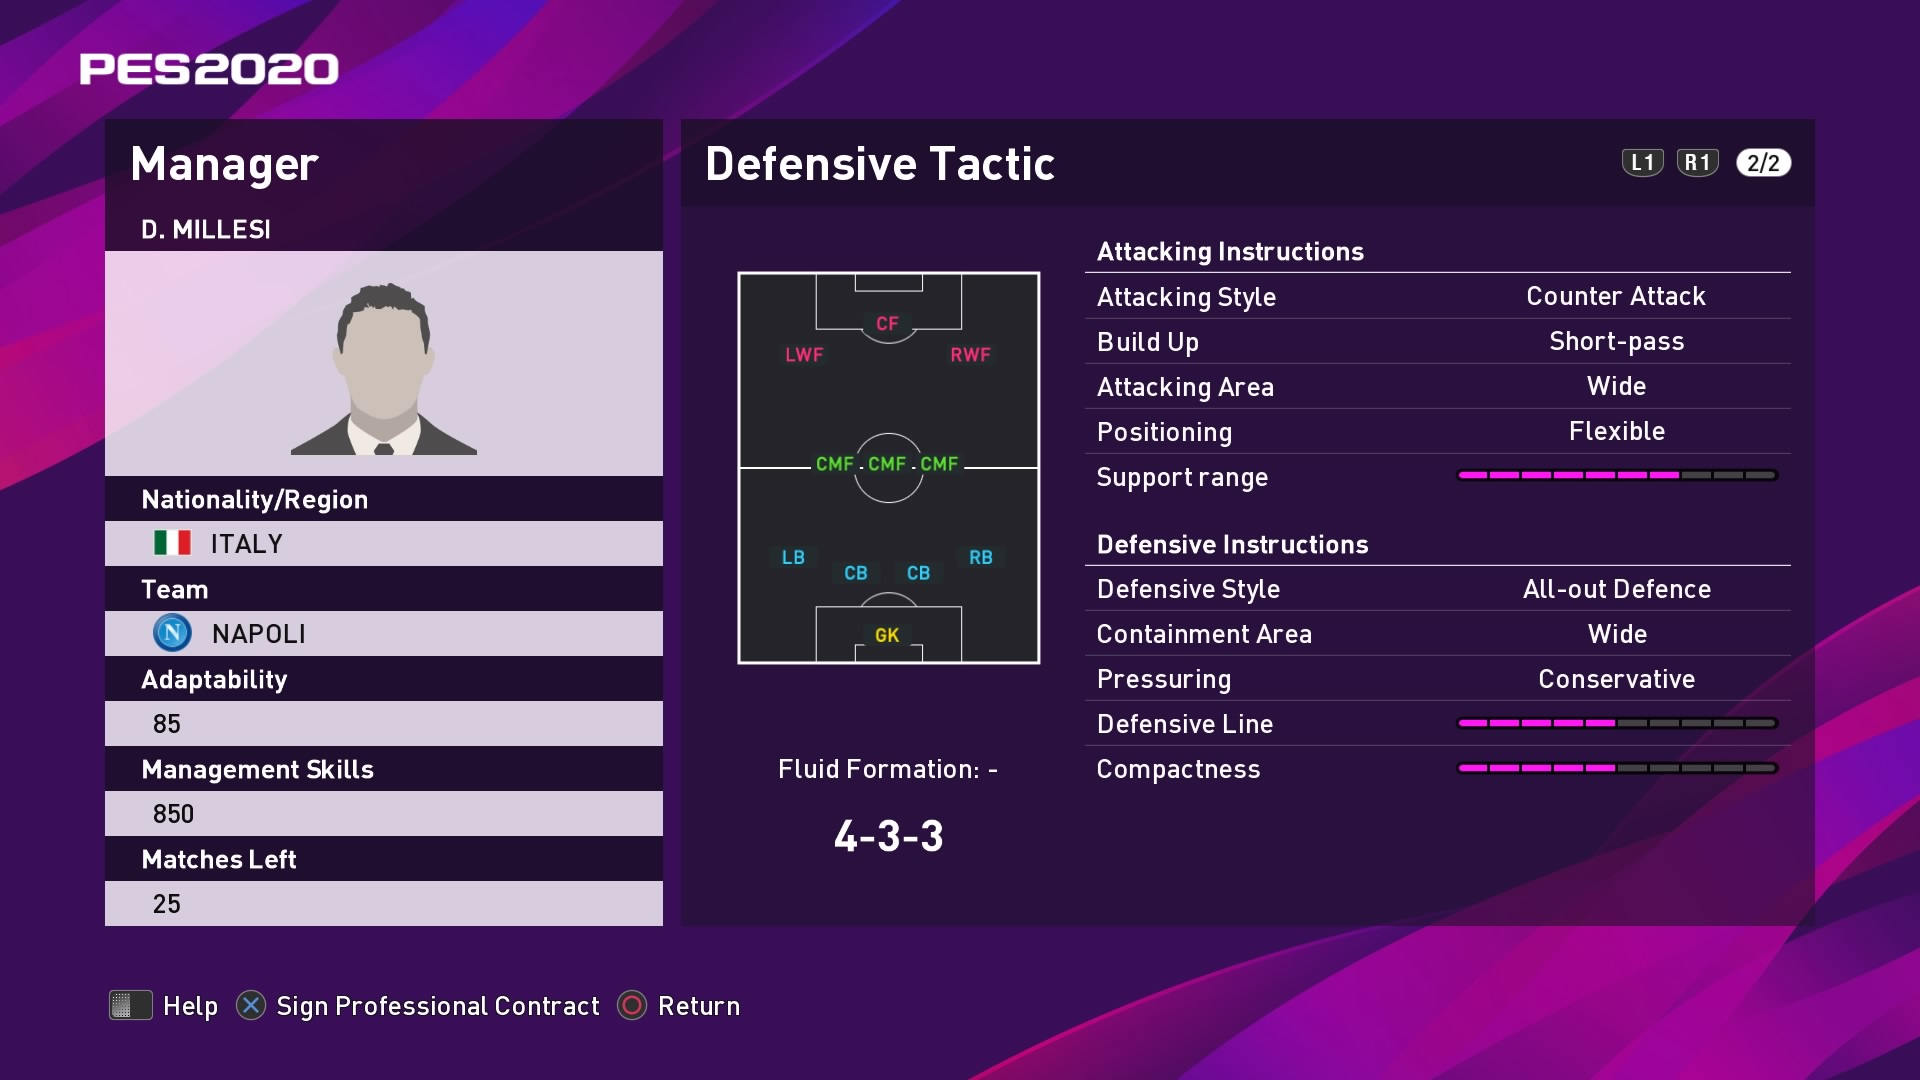 D. Millesi (2) (Carlo Ancelotti) Defensive Tactic in PES 2020 myClub